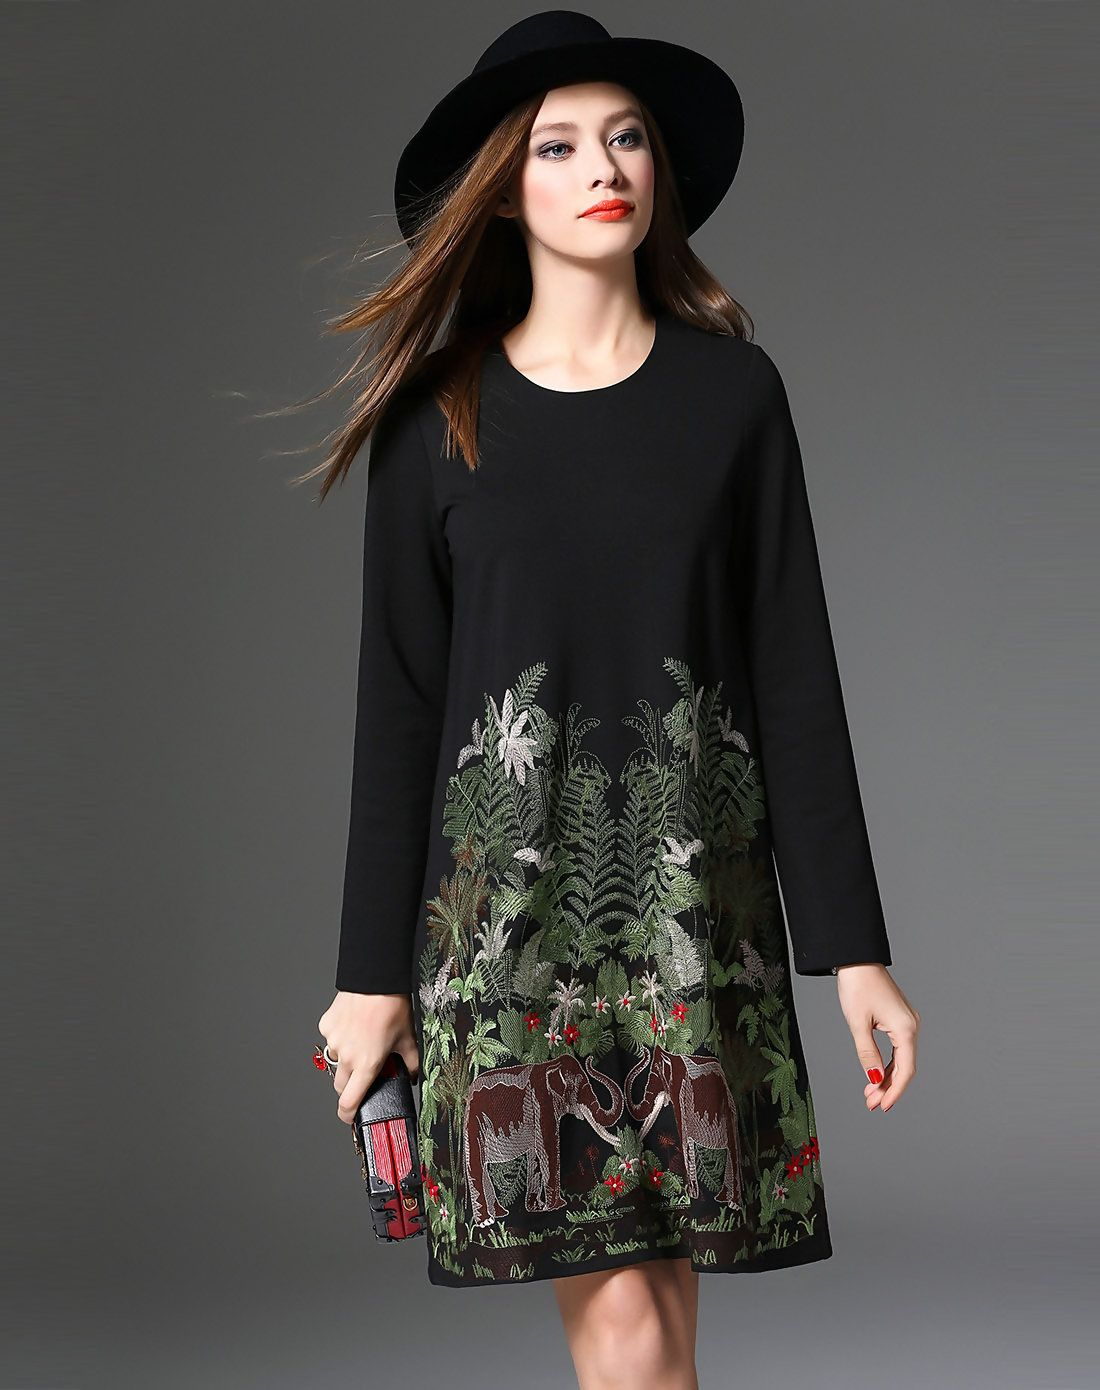 1f6814402e6e  AdoreWe  VIPme (VIPSHOP Global) Womens - YuJia Black Long Sleeve Plaint  Embroidery A Line Short Dress - AdoreWe.com